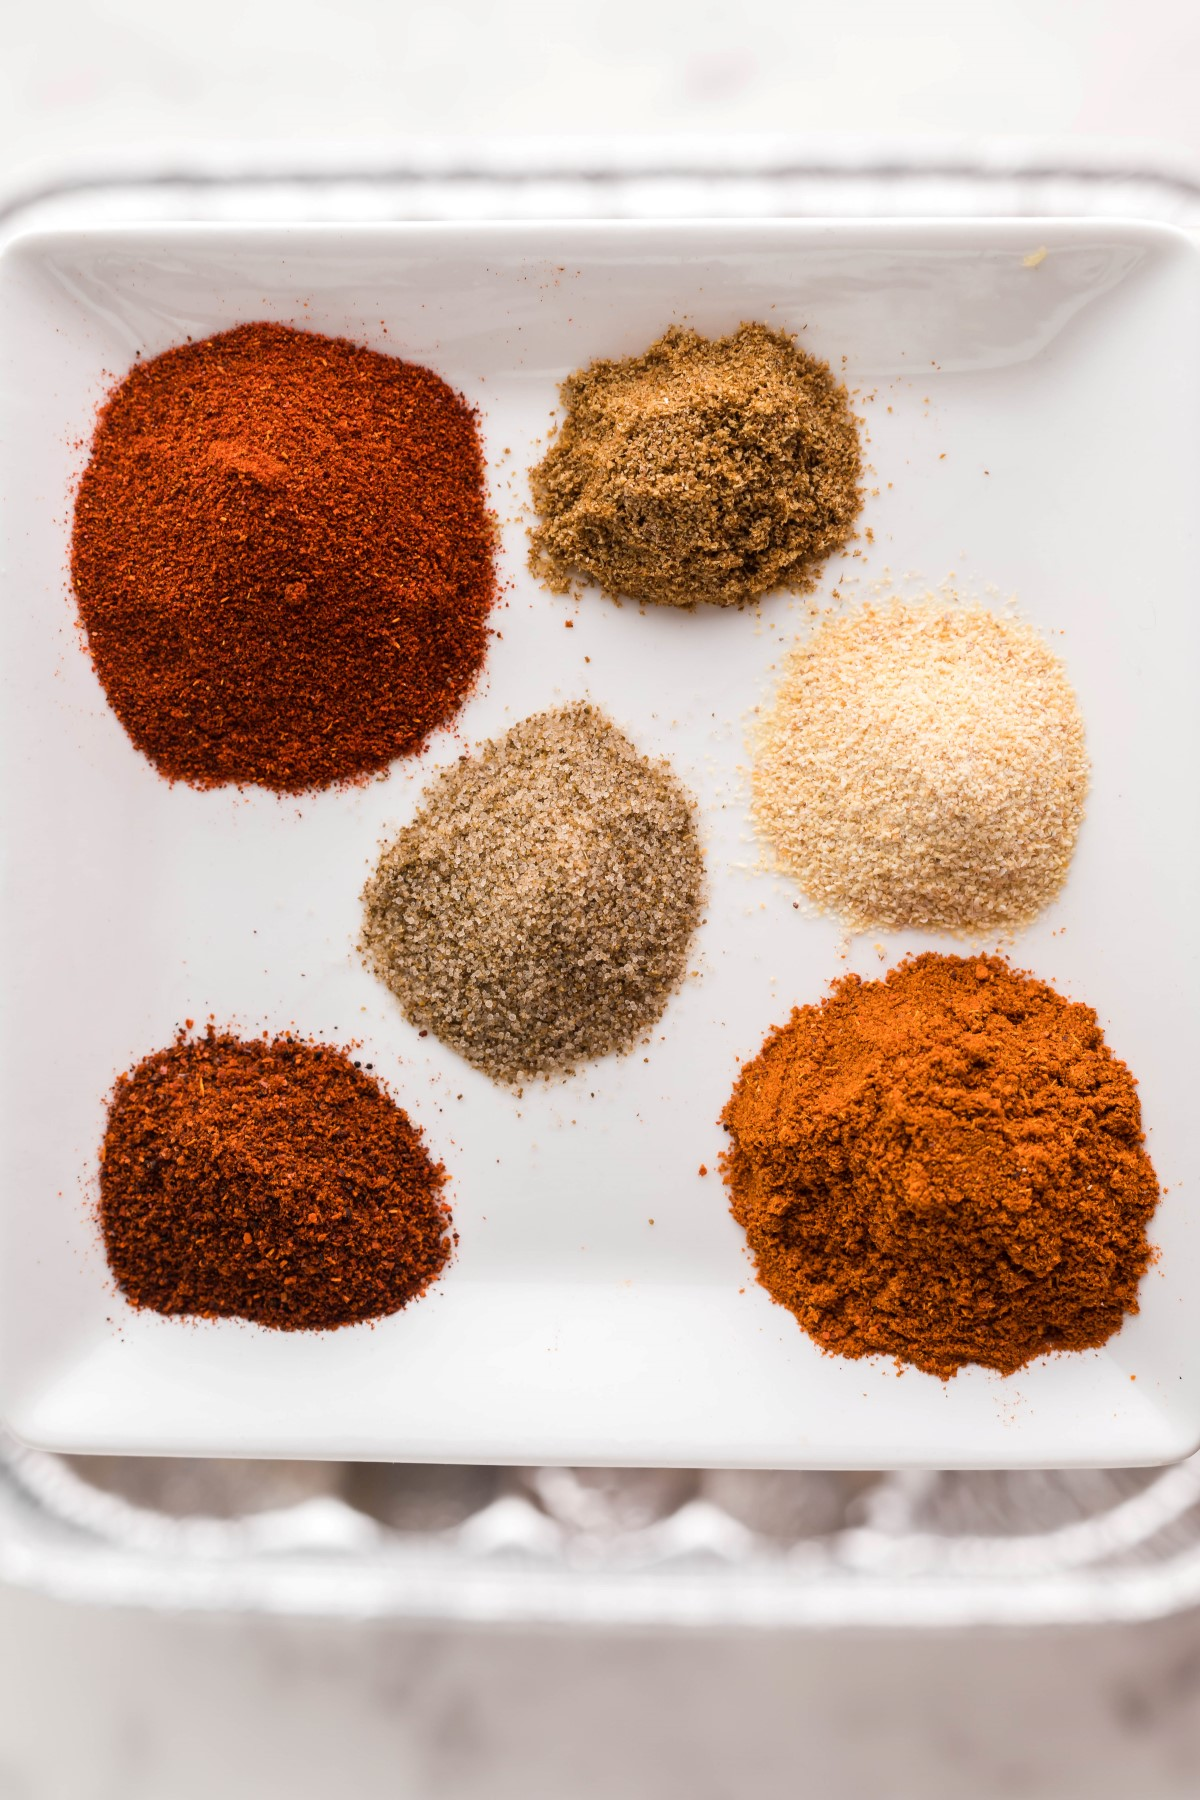 All the ingredients for the dry rub in small piles on a white plate.